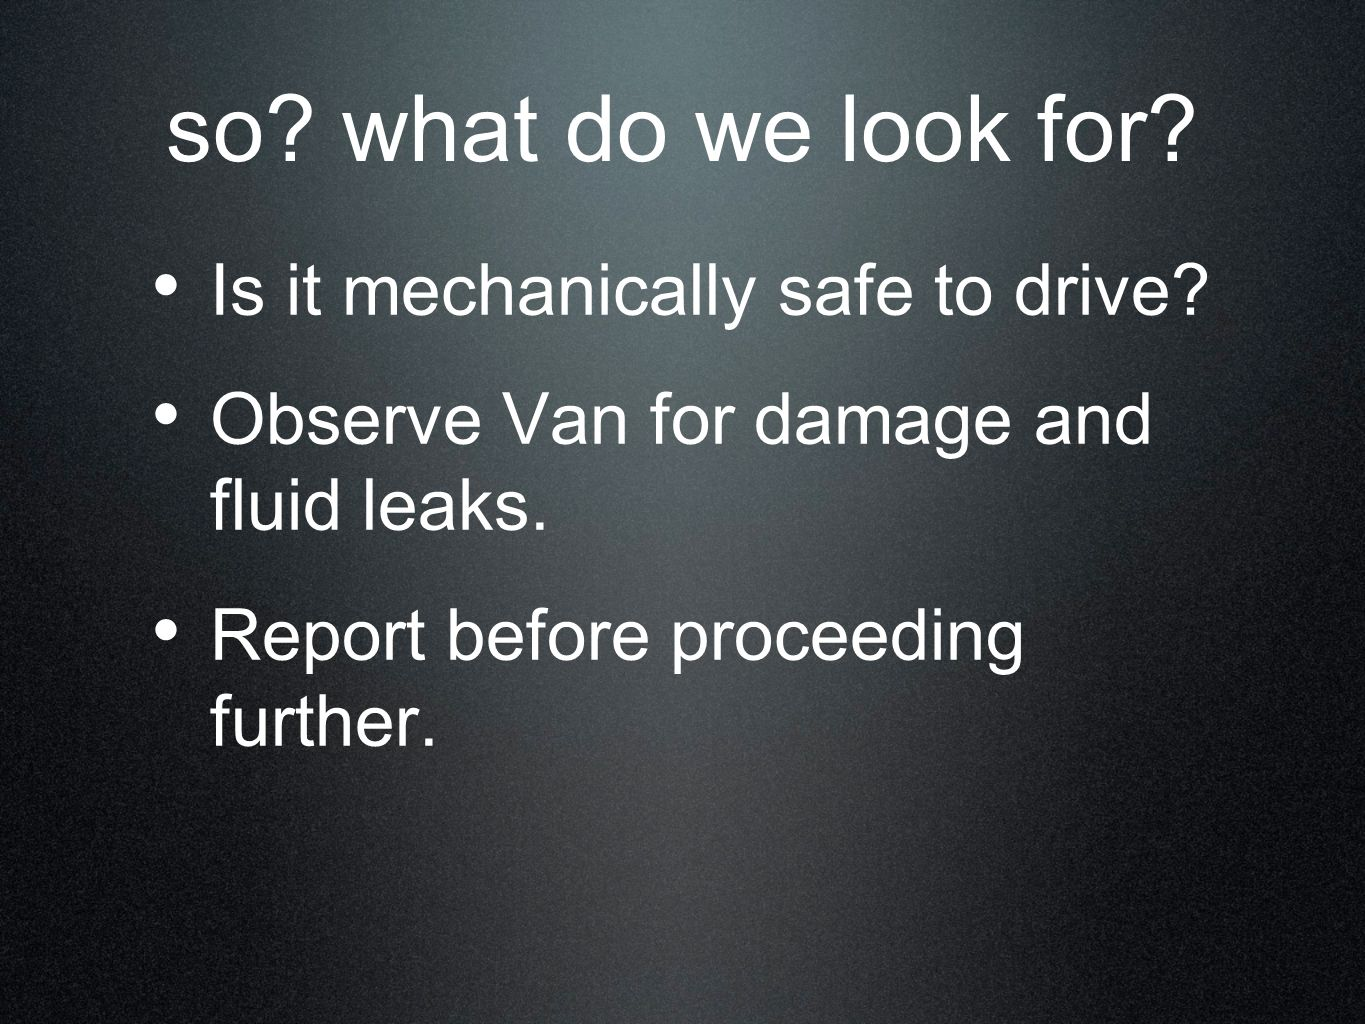 so? what do we look for? Is it mechanically safe to drive? Observe Van for damage and fluid leaks. Report before proceeding further.